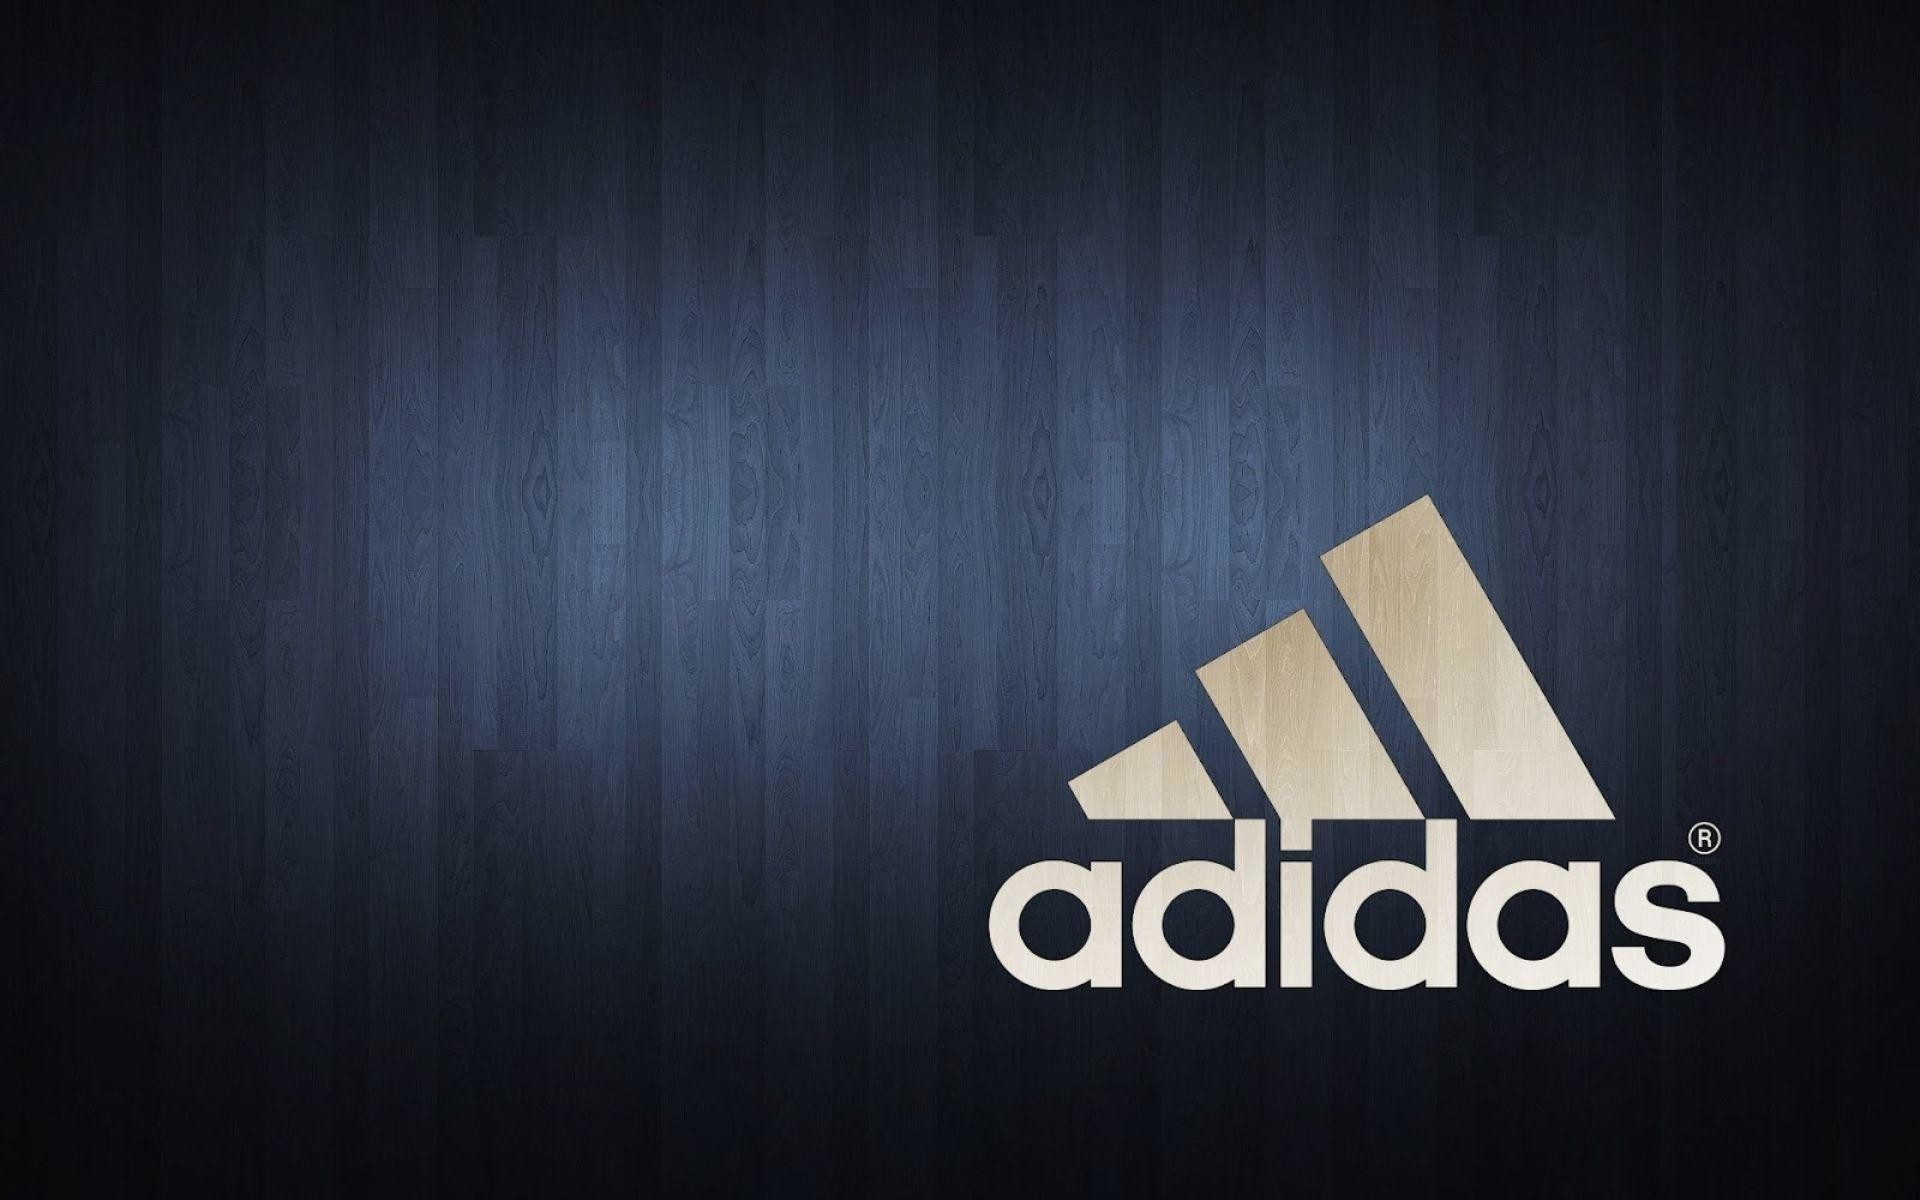 Adidas 2018 Wallpaper 75 Images